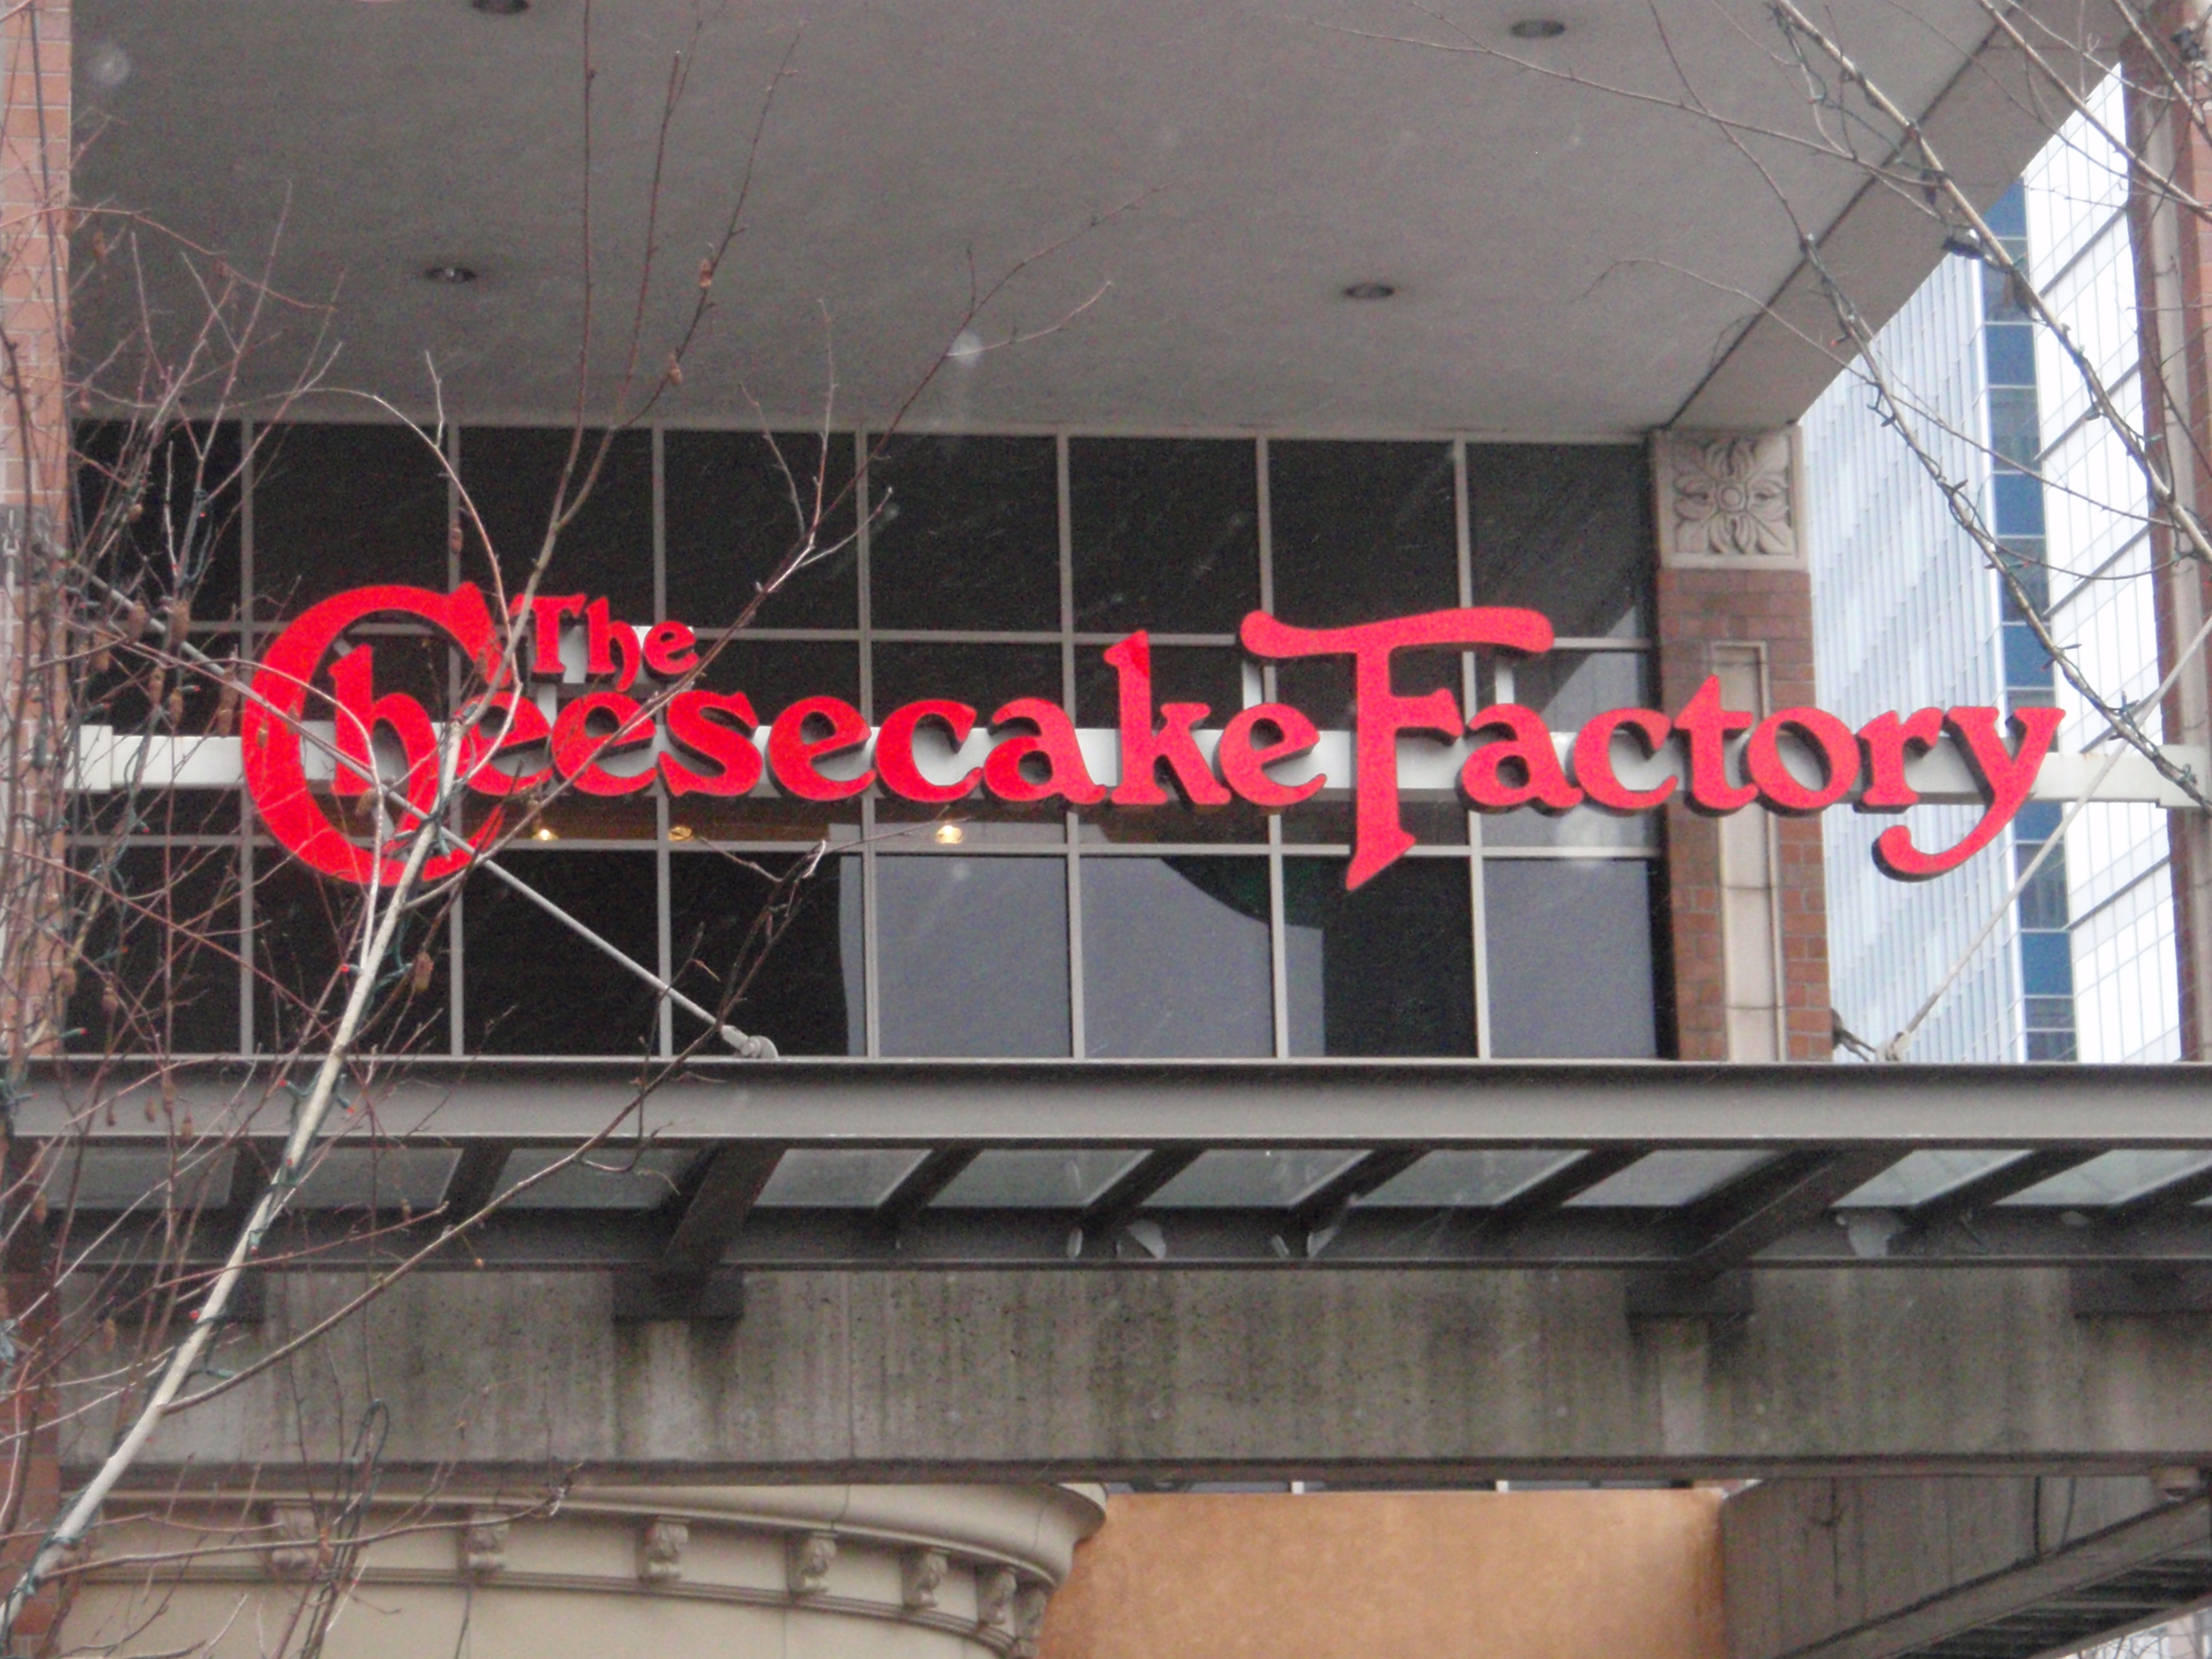 A photograph shows a large Cheesecake Factory sign hanging above the entryway of a building.